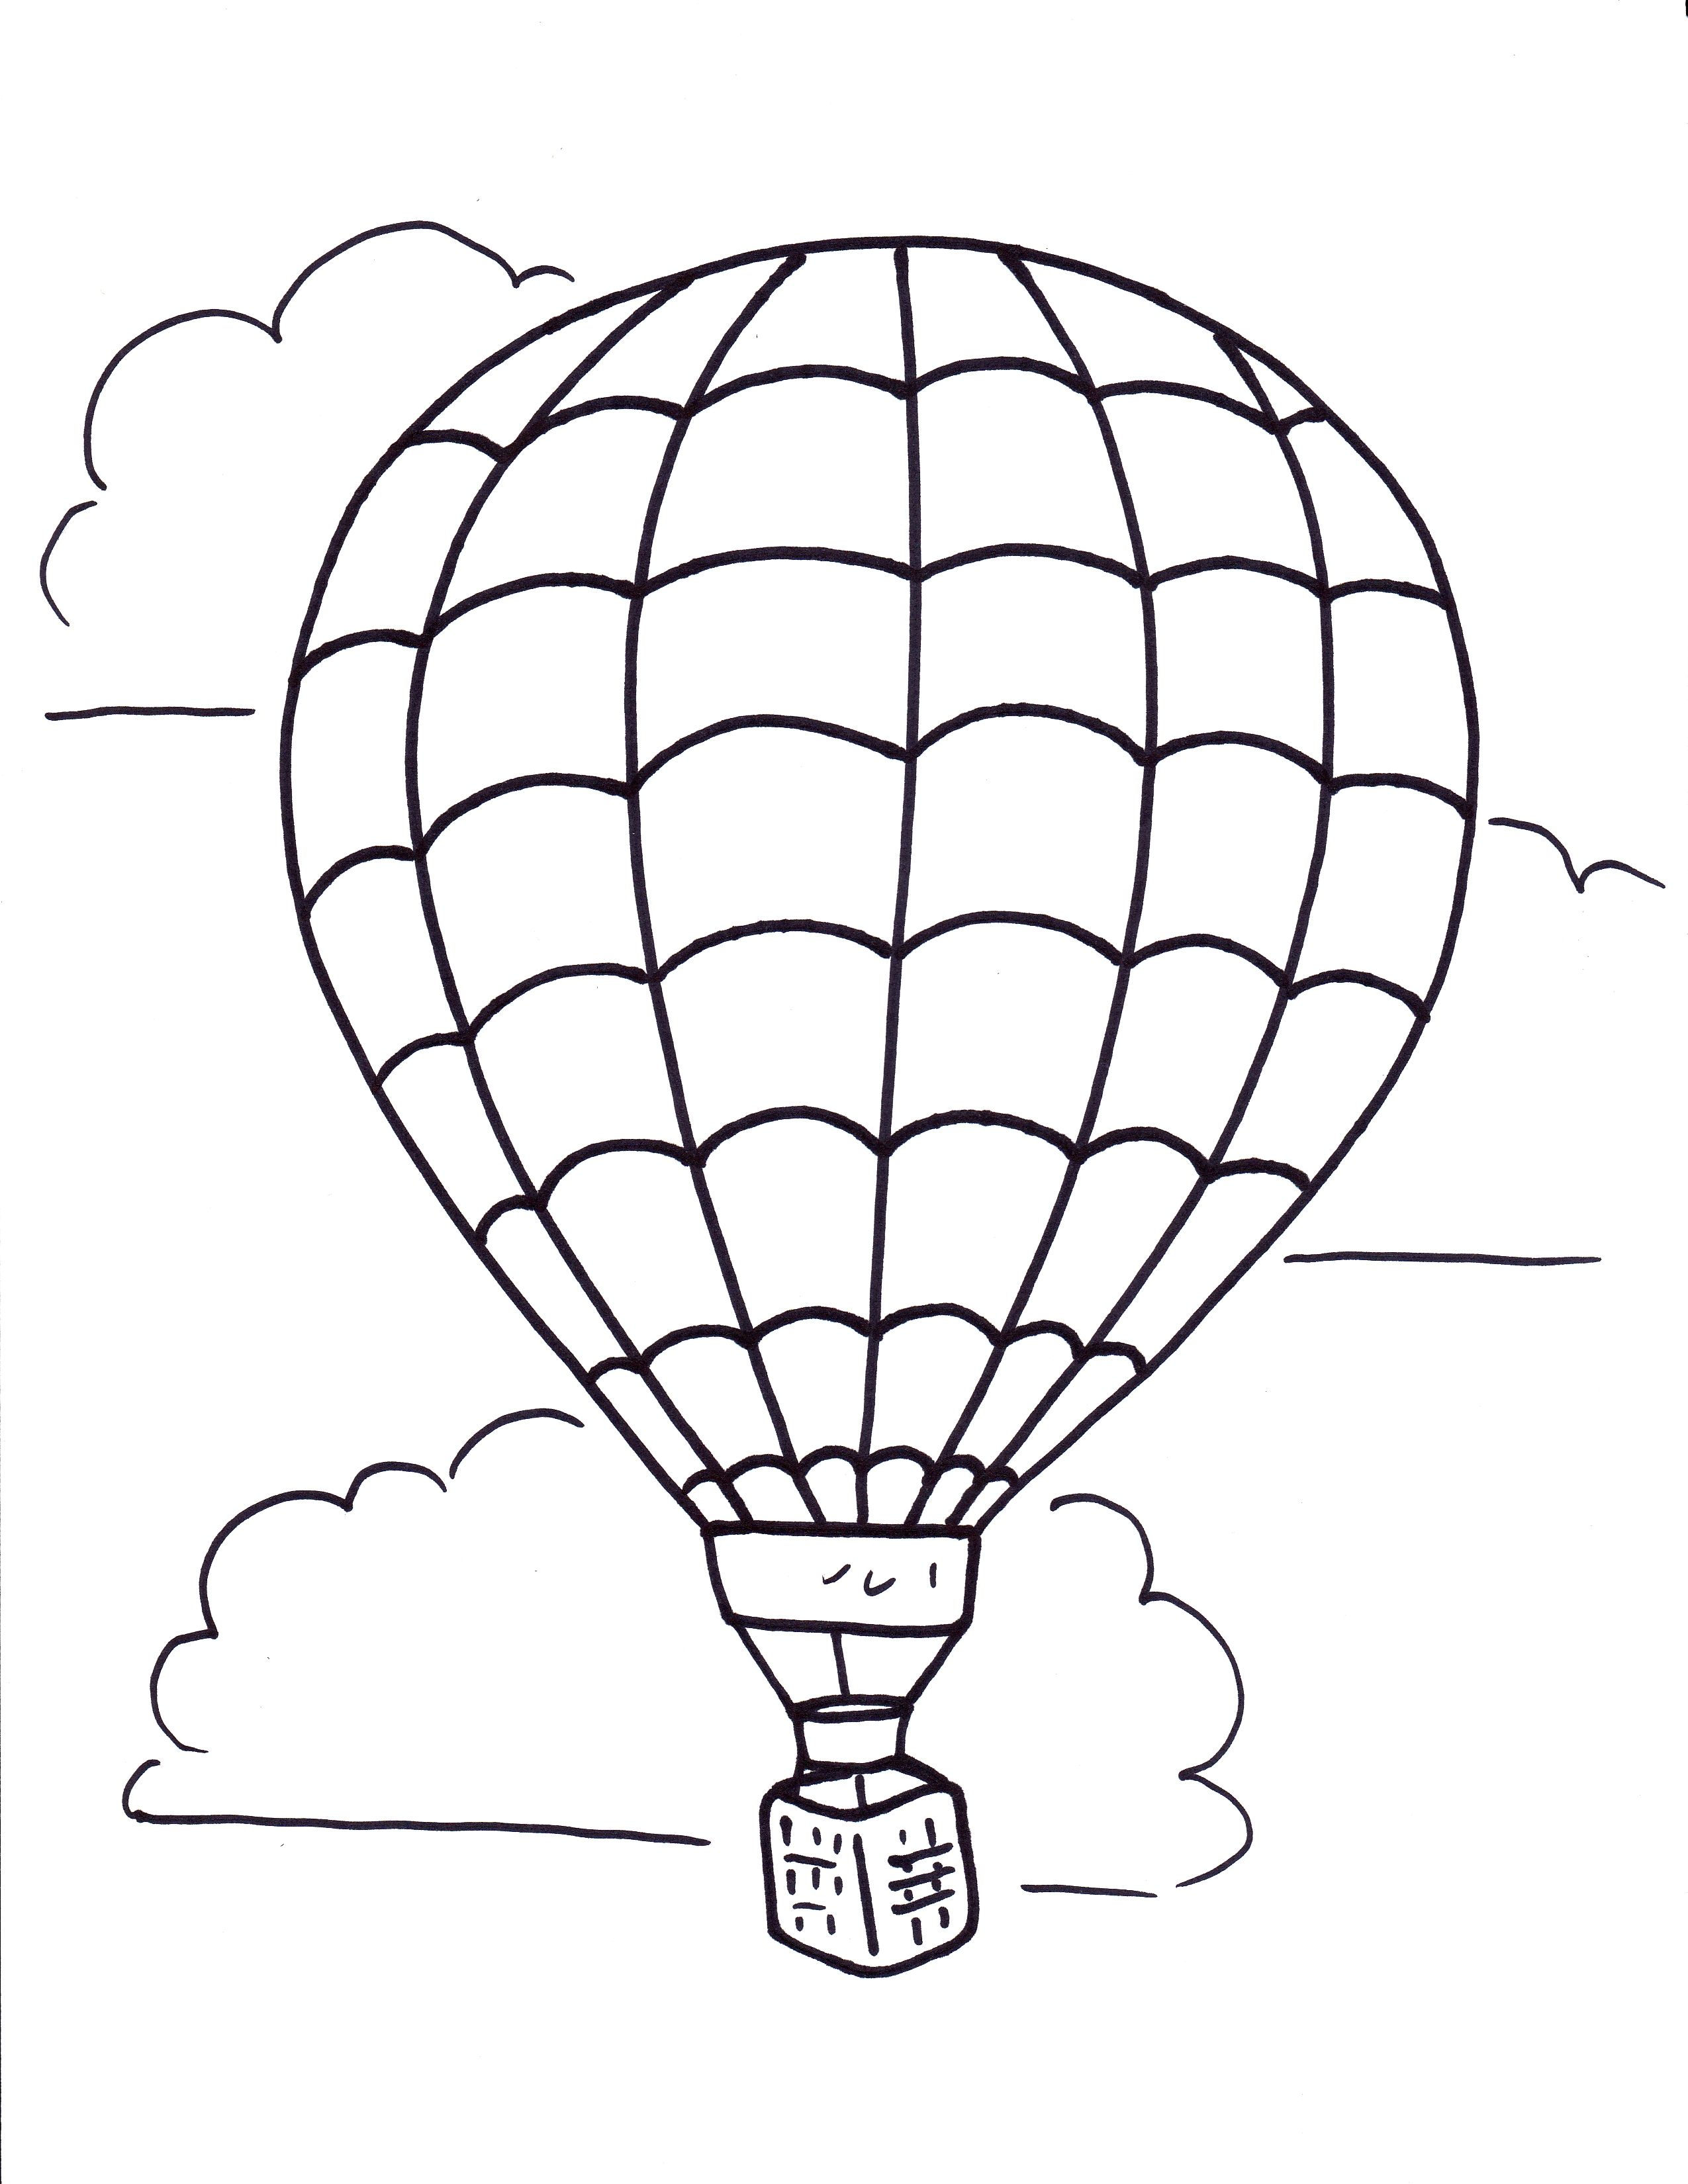 Printable coloring pages hot air balloons - Related Hot Air Balloon Coloring Pages Item 11522 Hot Air Balloon Coloring